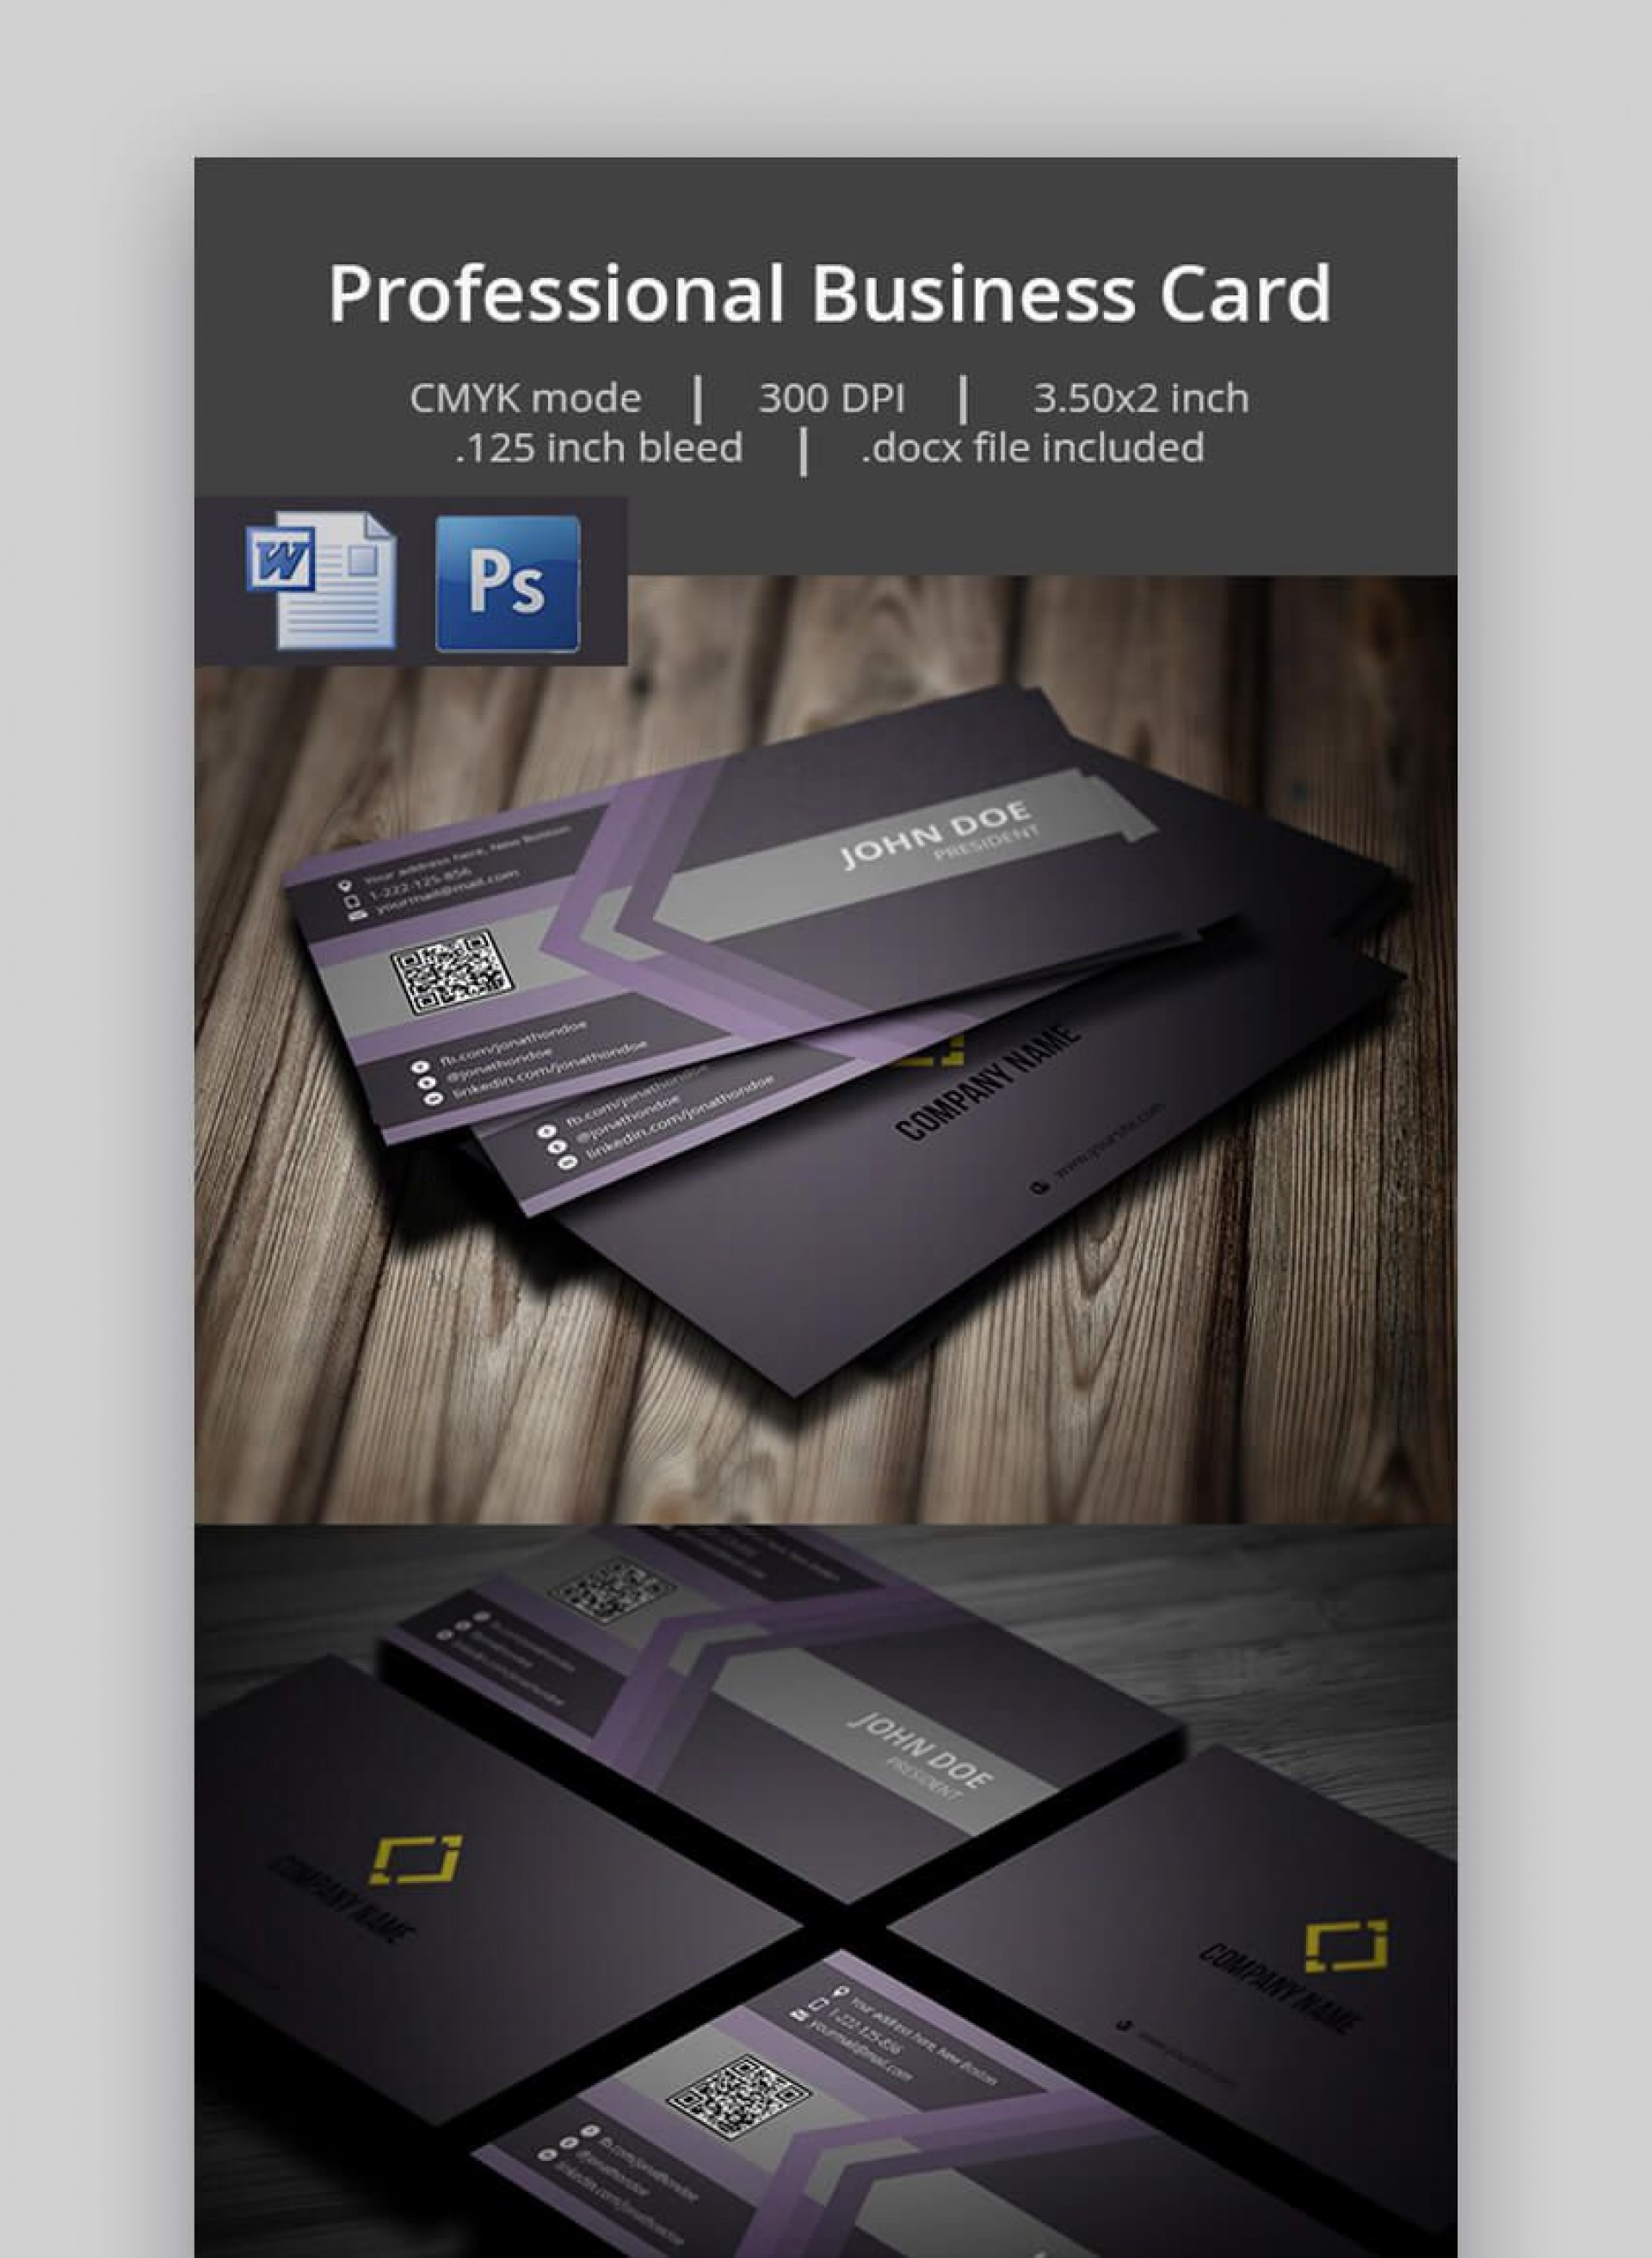 009 Formidable M Office Busines Card Template Highest Clarity  Templates Microsoft 2010 20071920